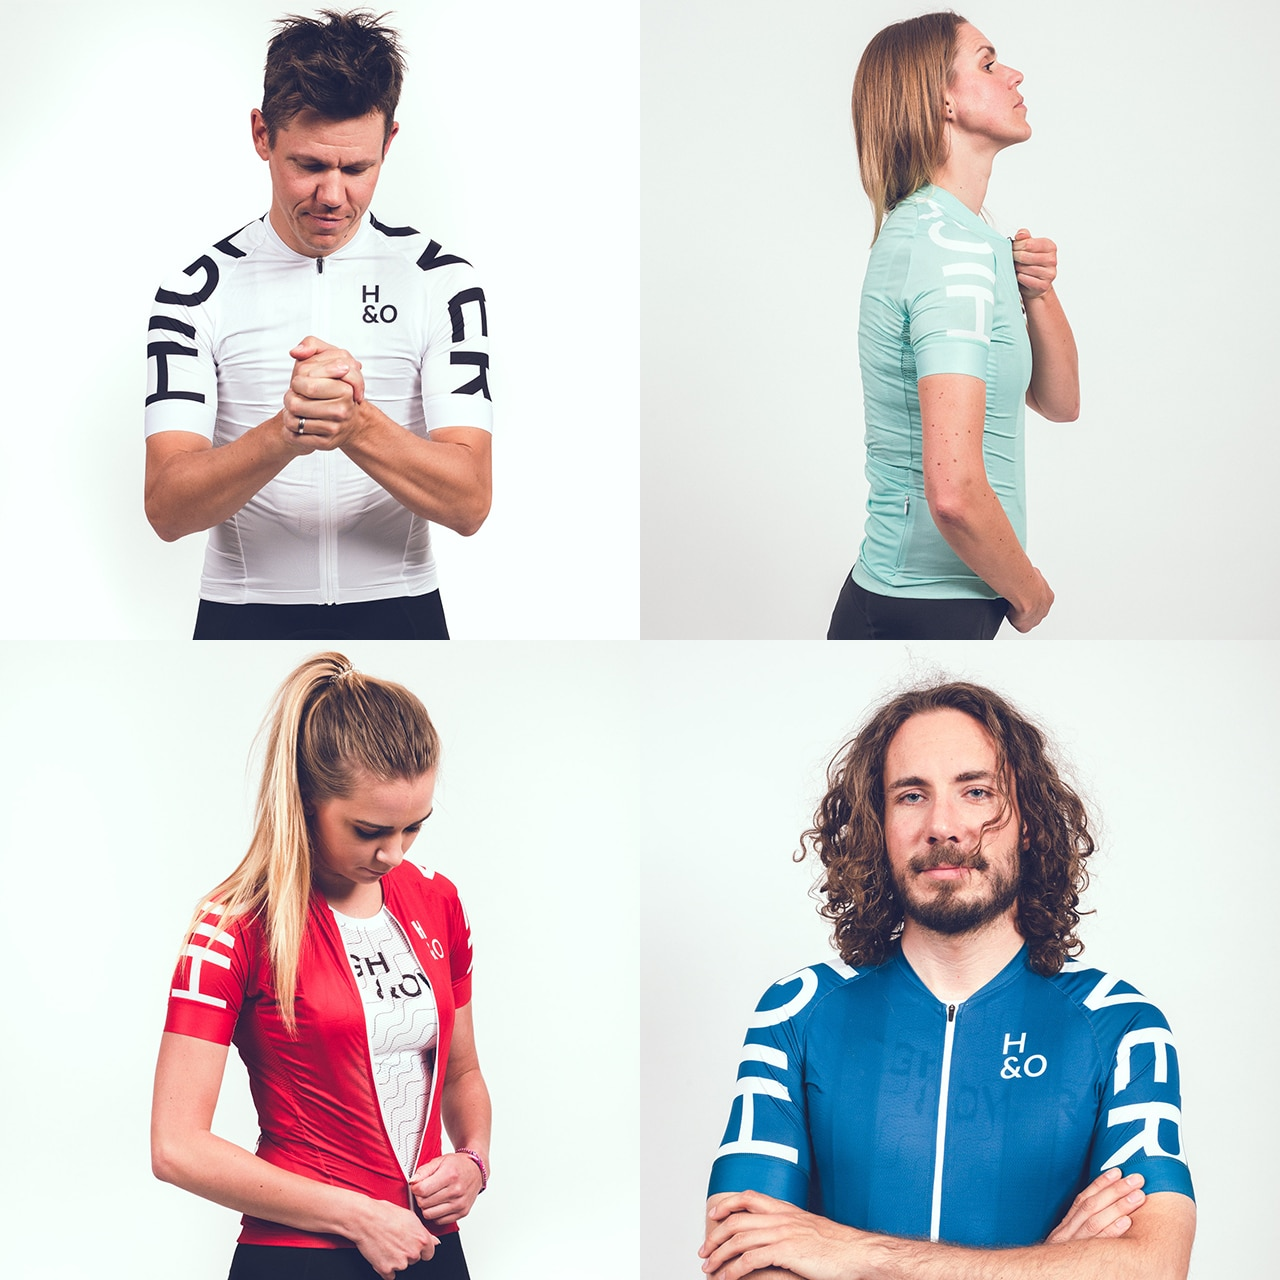 HIGH&OVER cycling jerseys